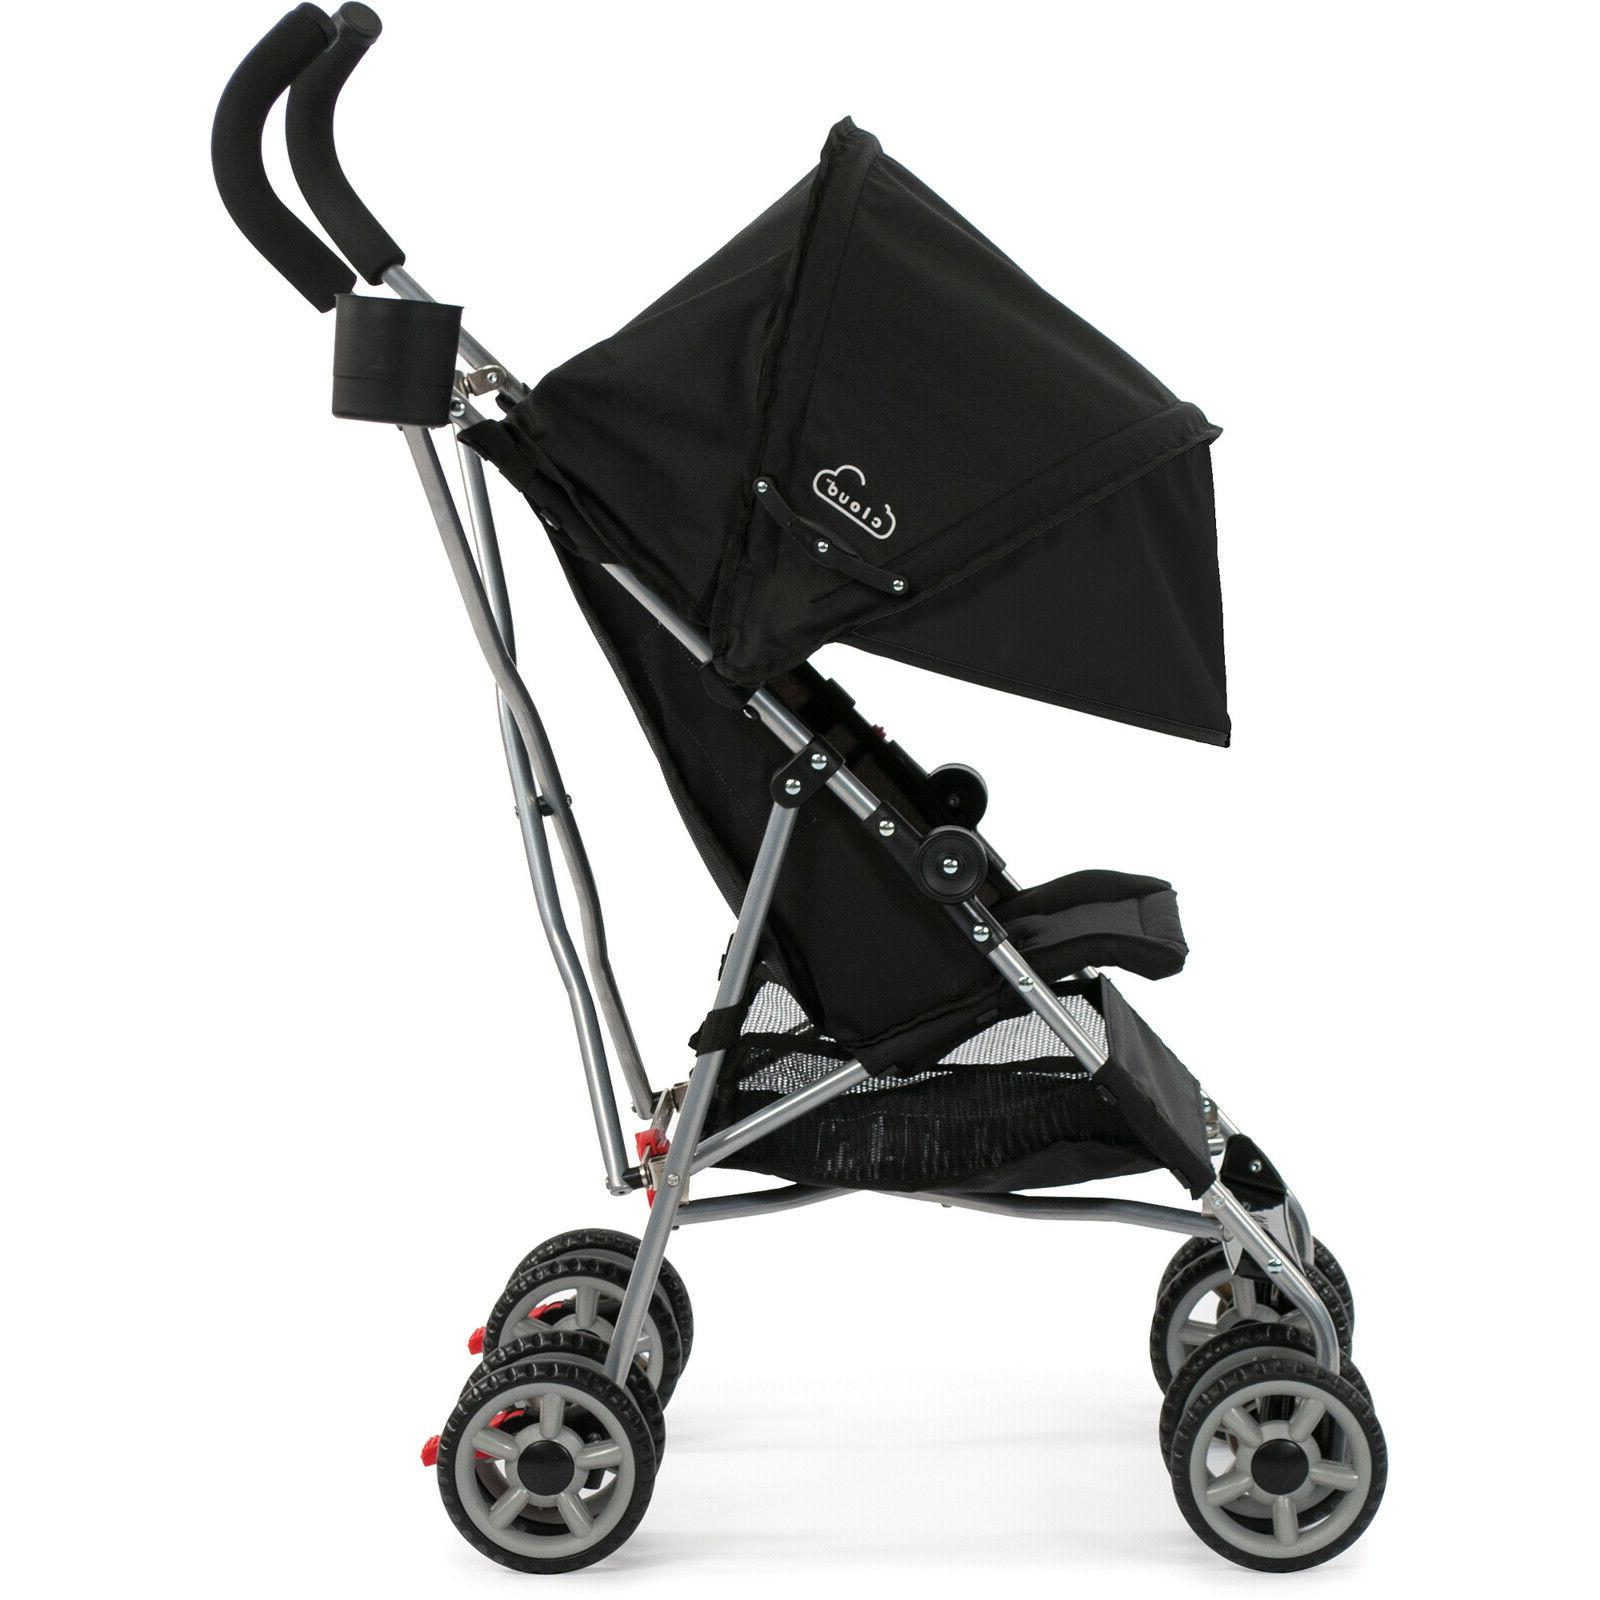 Childrens Single Toddler Friendly Compact Foldable